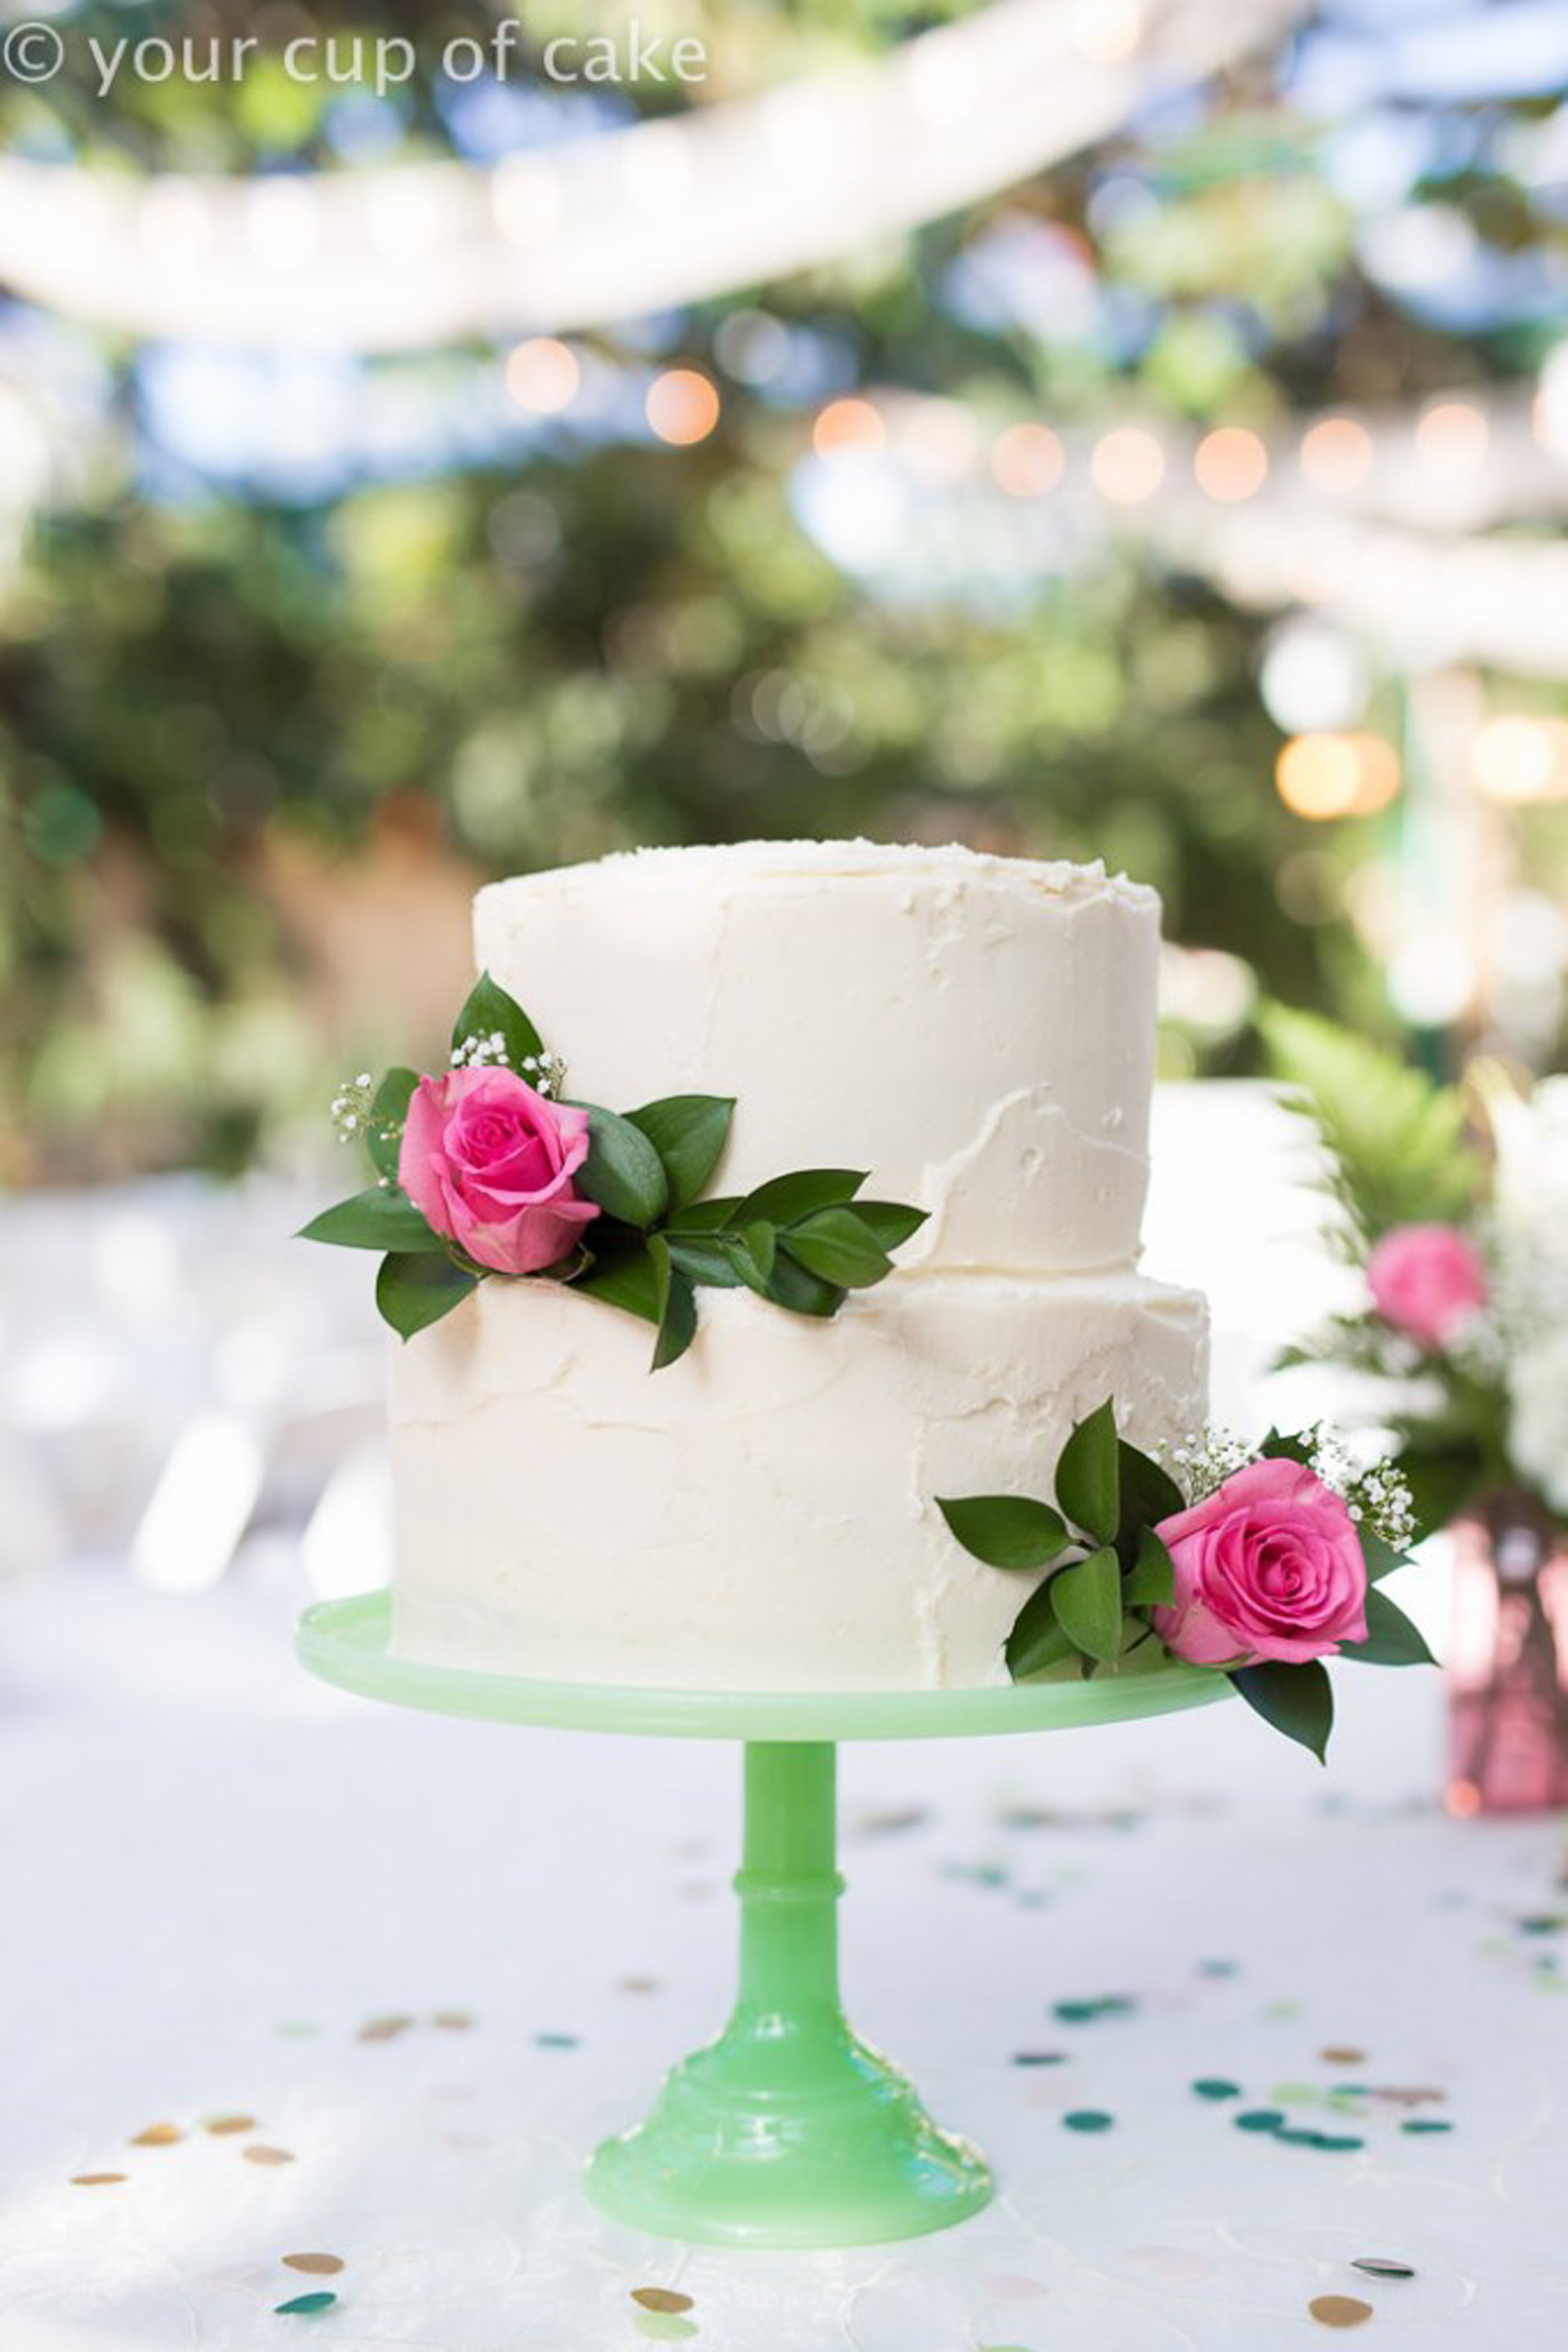 25 Best Homemade Wedding Cake Recipes From Scratch